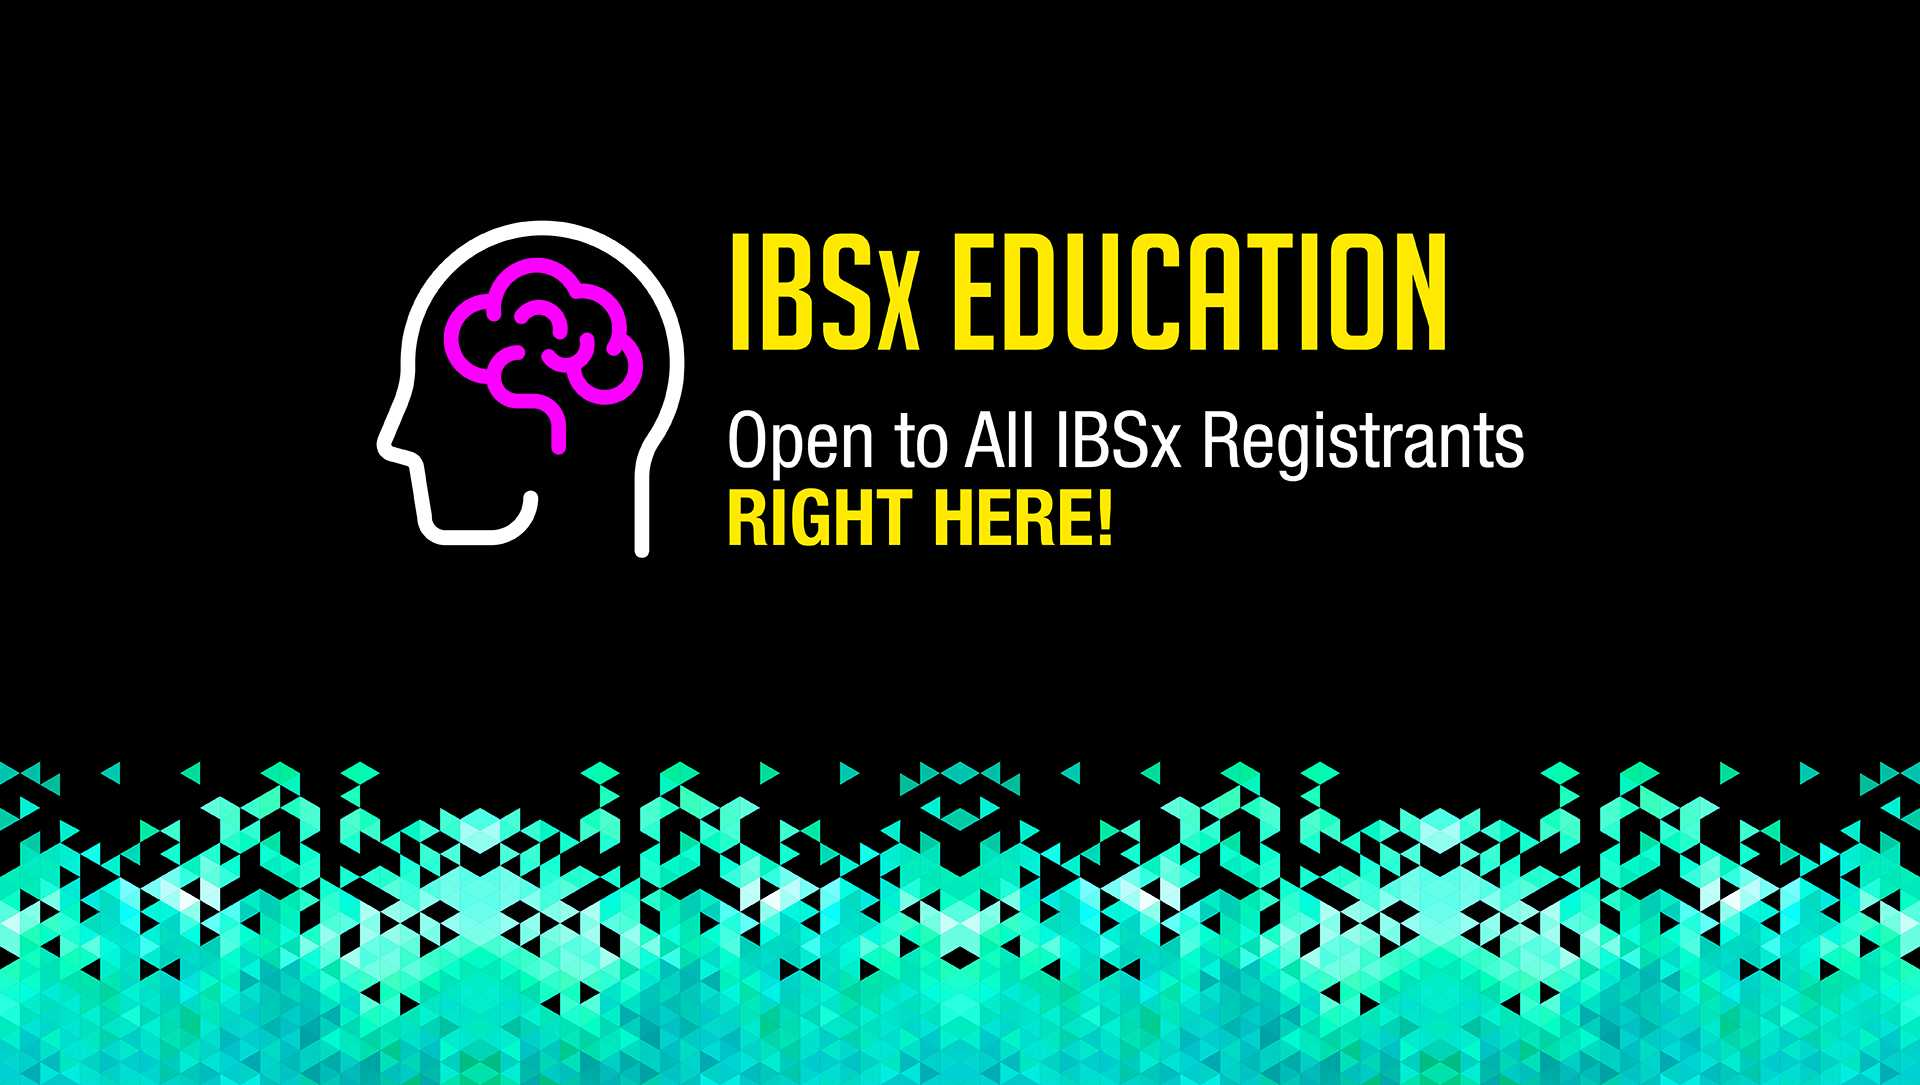 IBSx Education